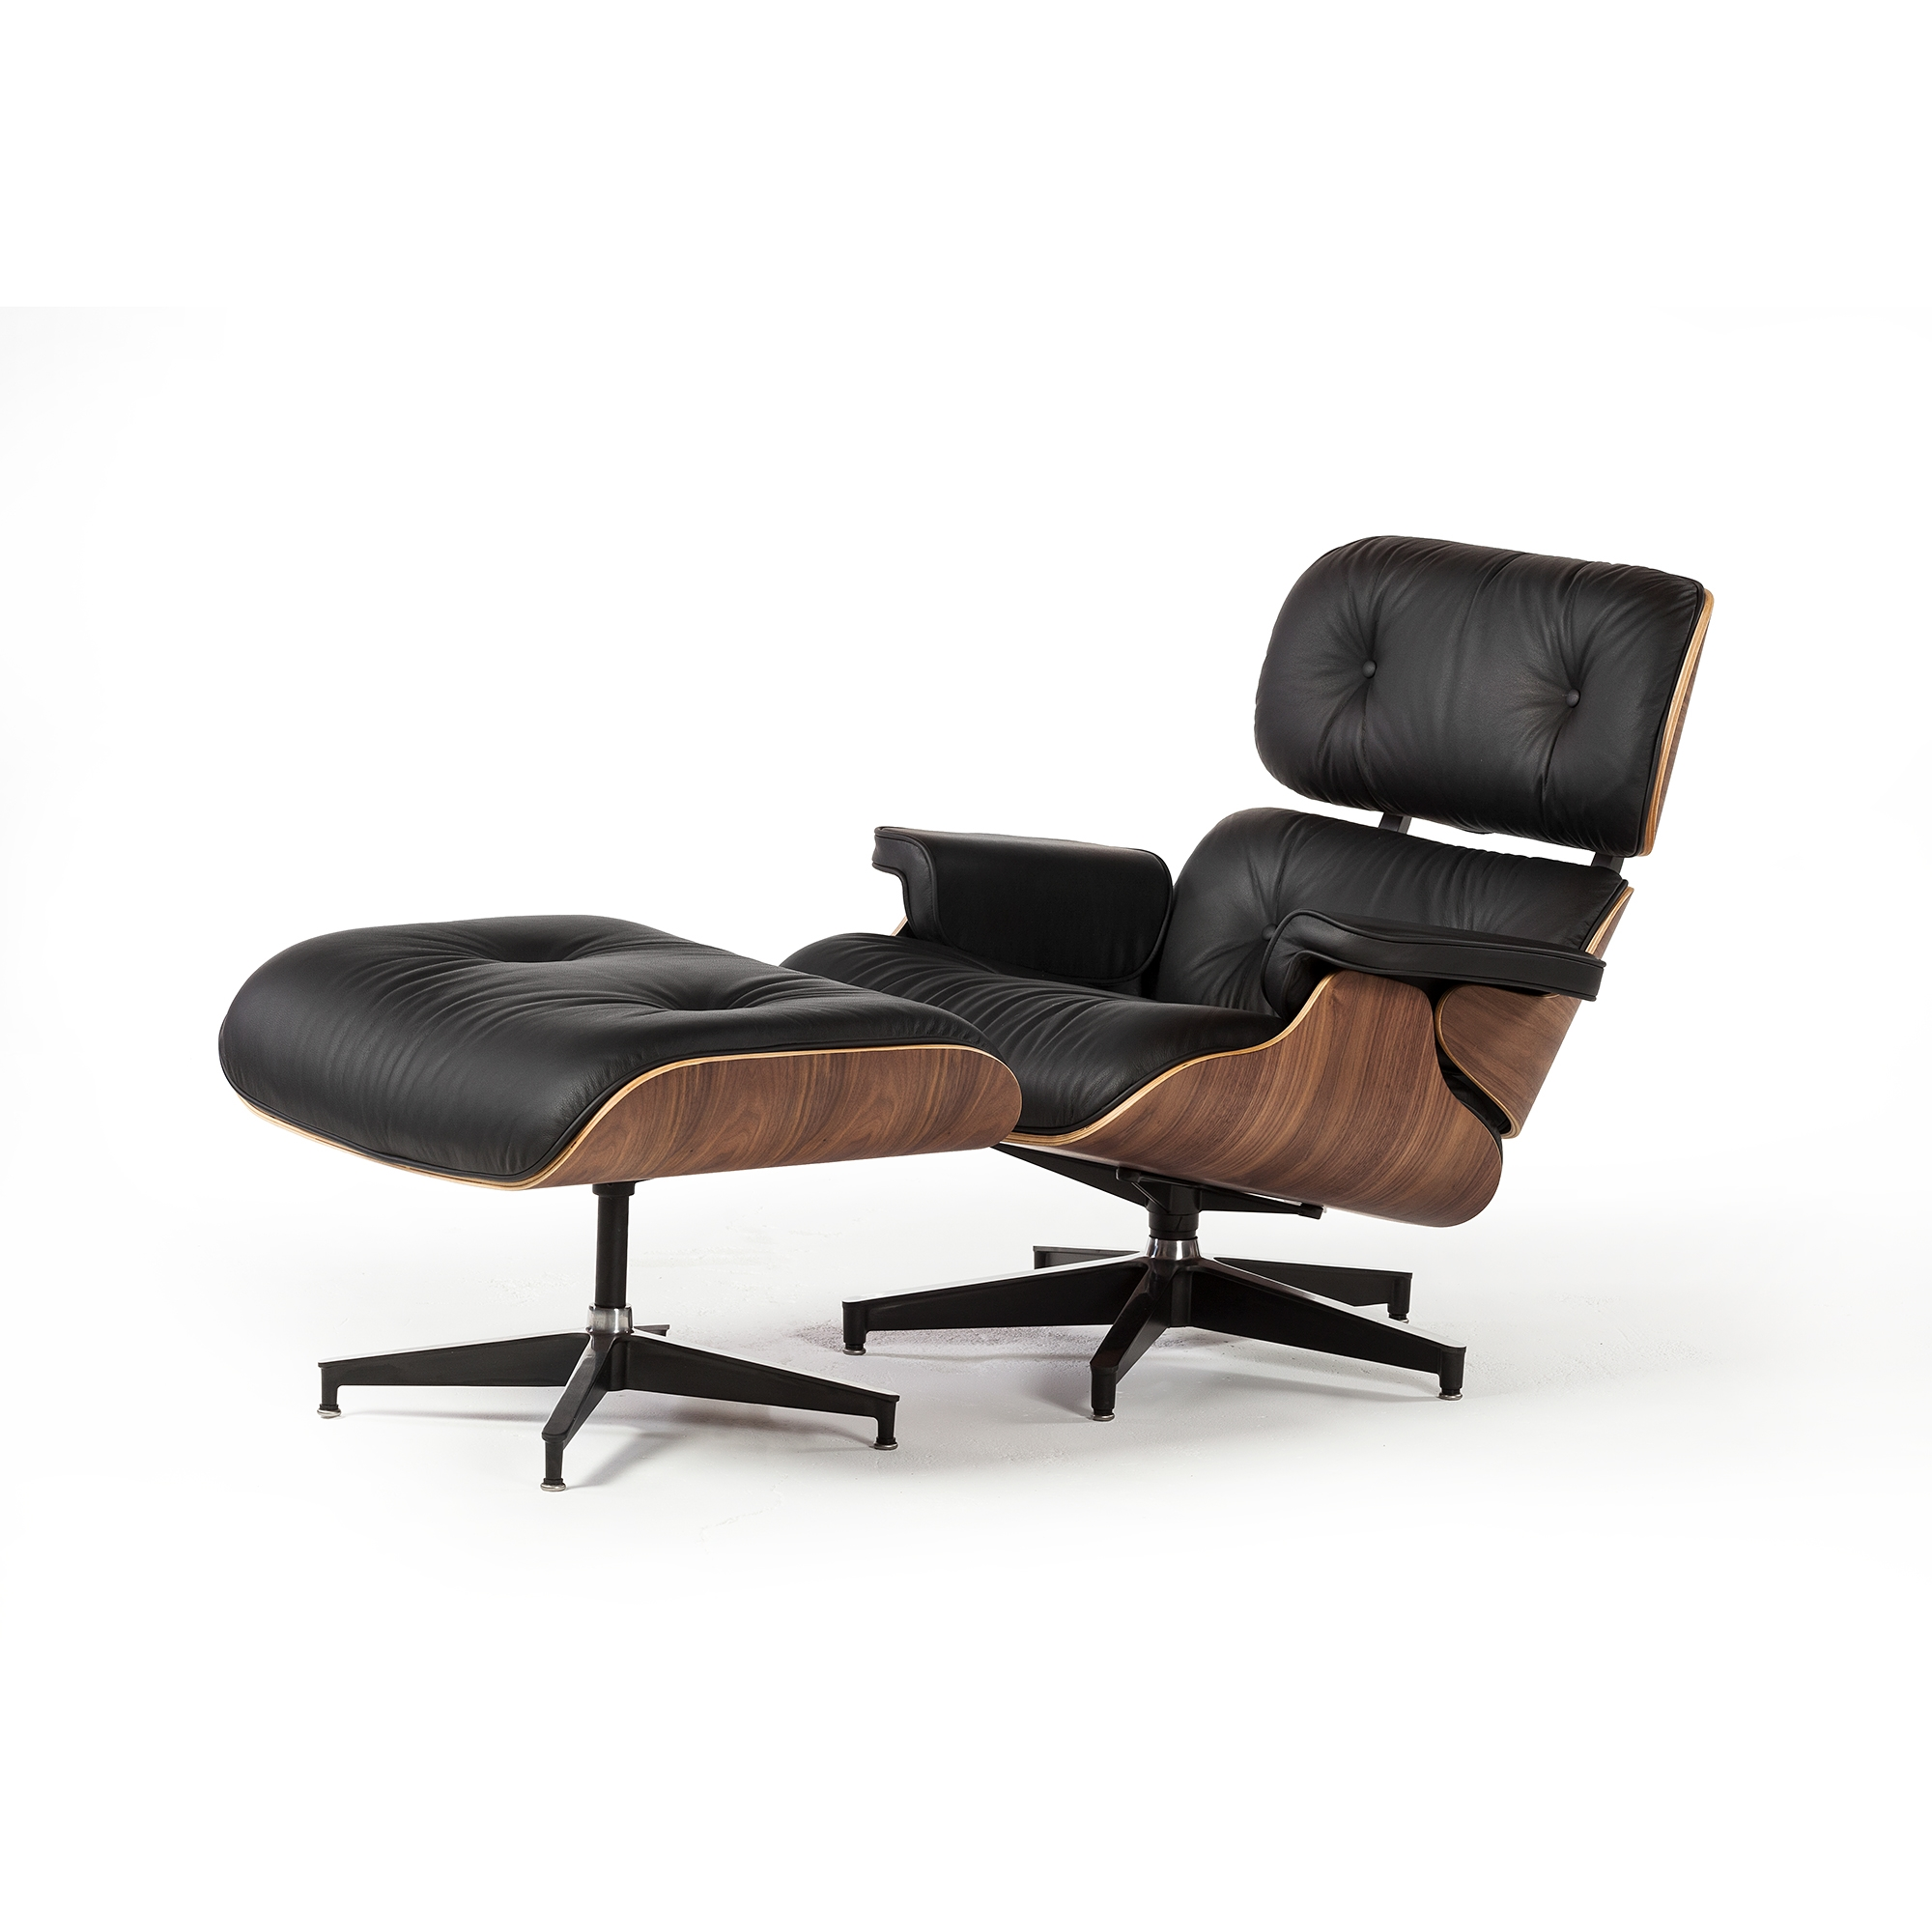 Eames Chair Leather eames lounge chair with ottoman, the khazana home austin furniture